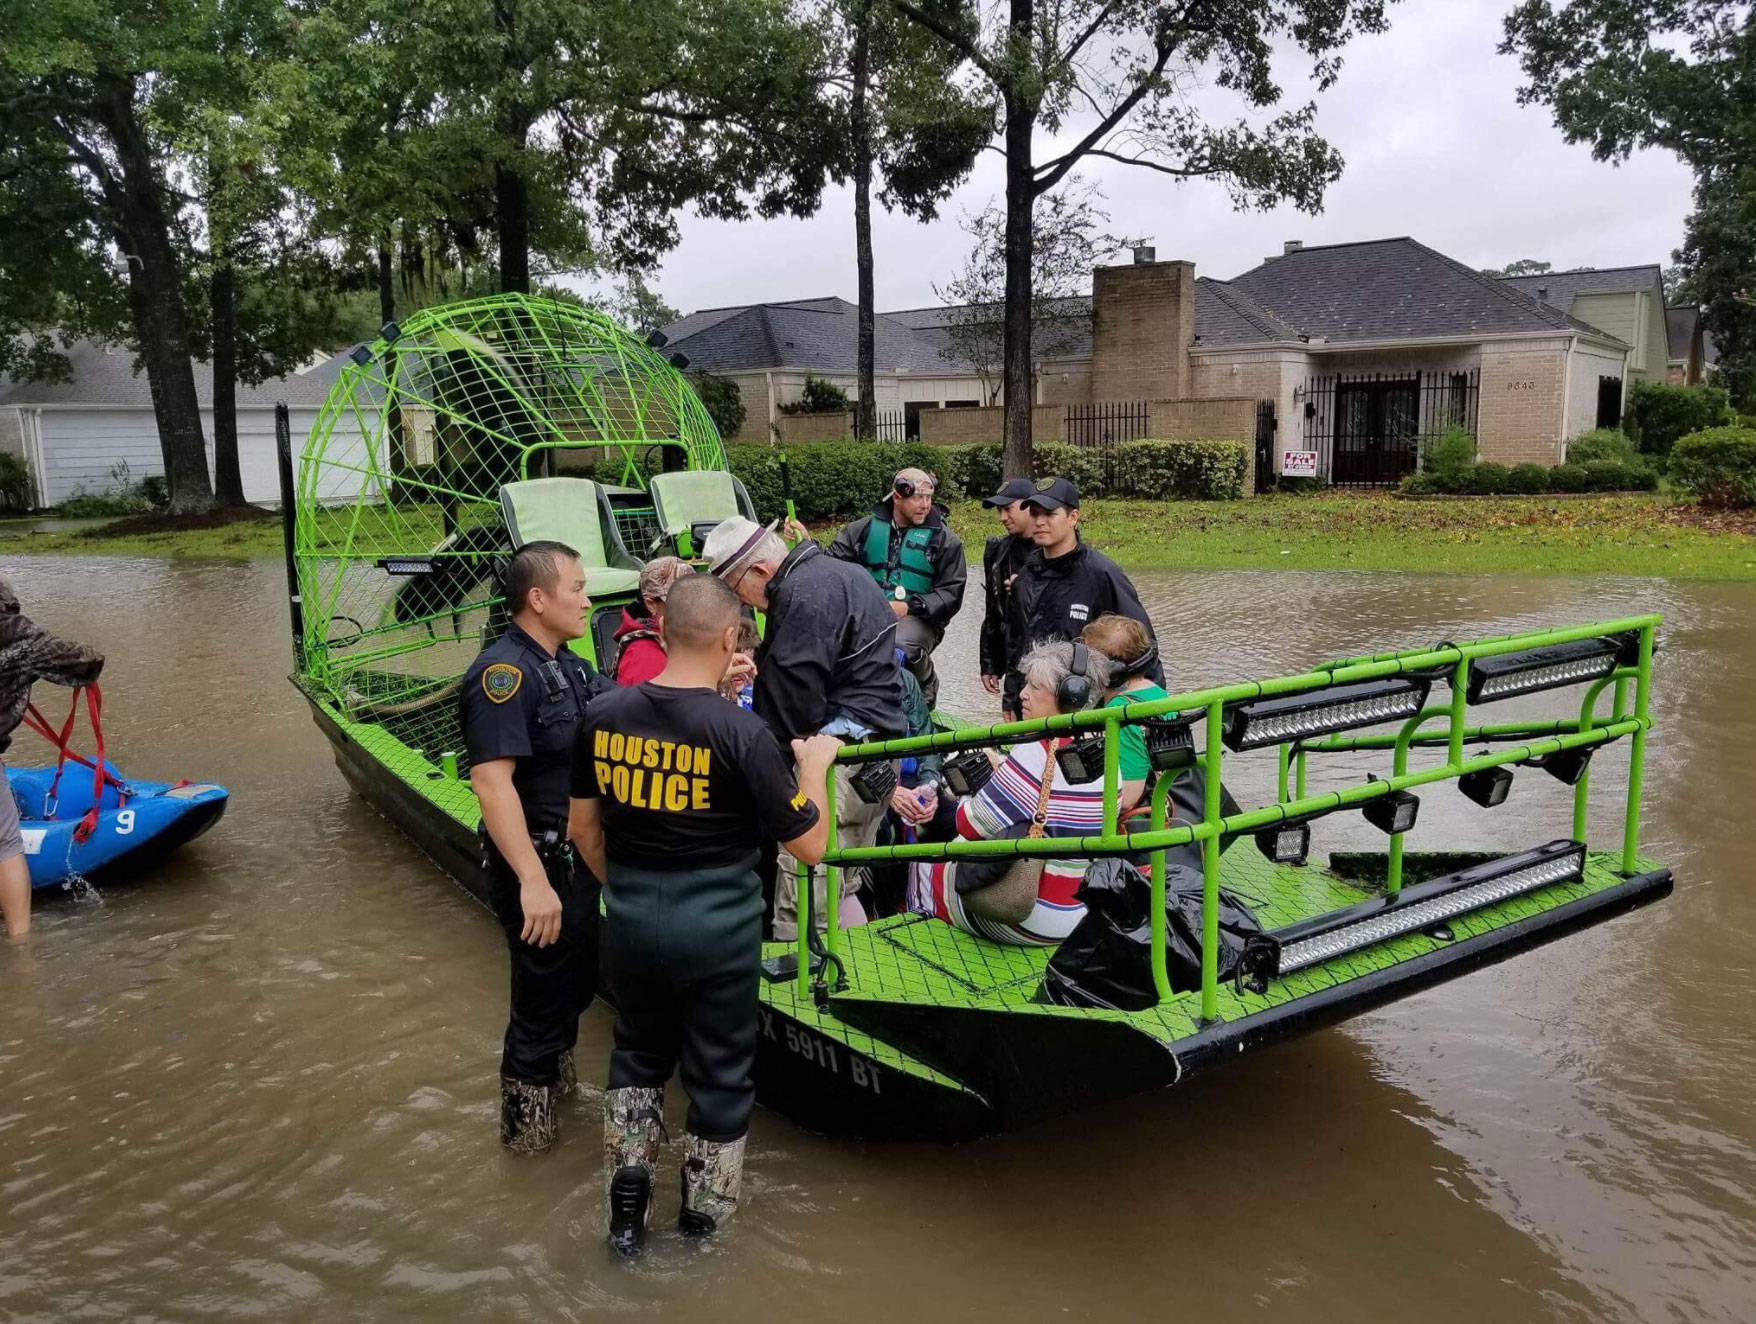 "<div class=""meta image-caption""><div class=""origin-logo origin-image none""><span>none</span></div><span class=""caption-text"">The Houston Police rescue a group stranded by the flood. (houstonpolice/Twitter)</span></div>"